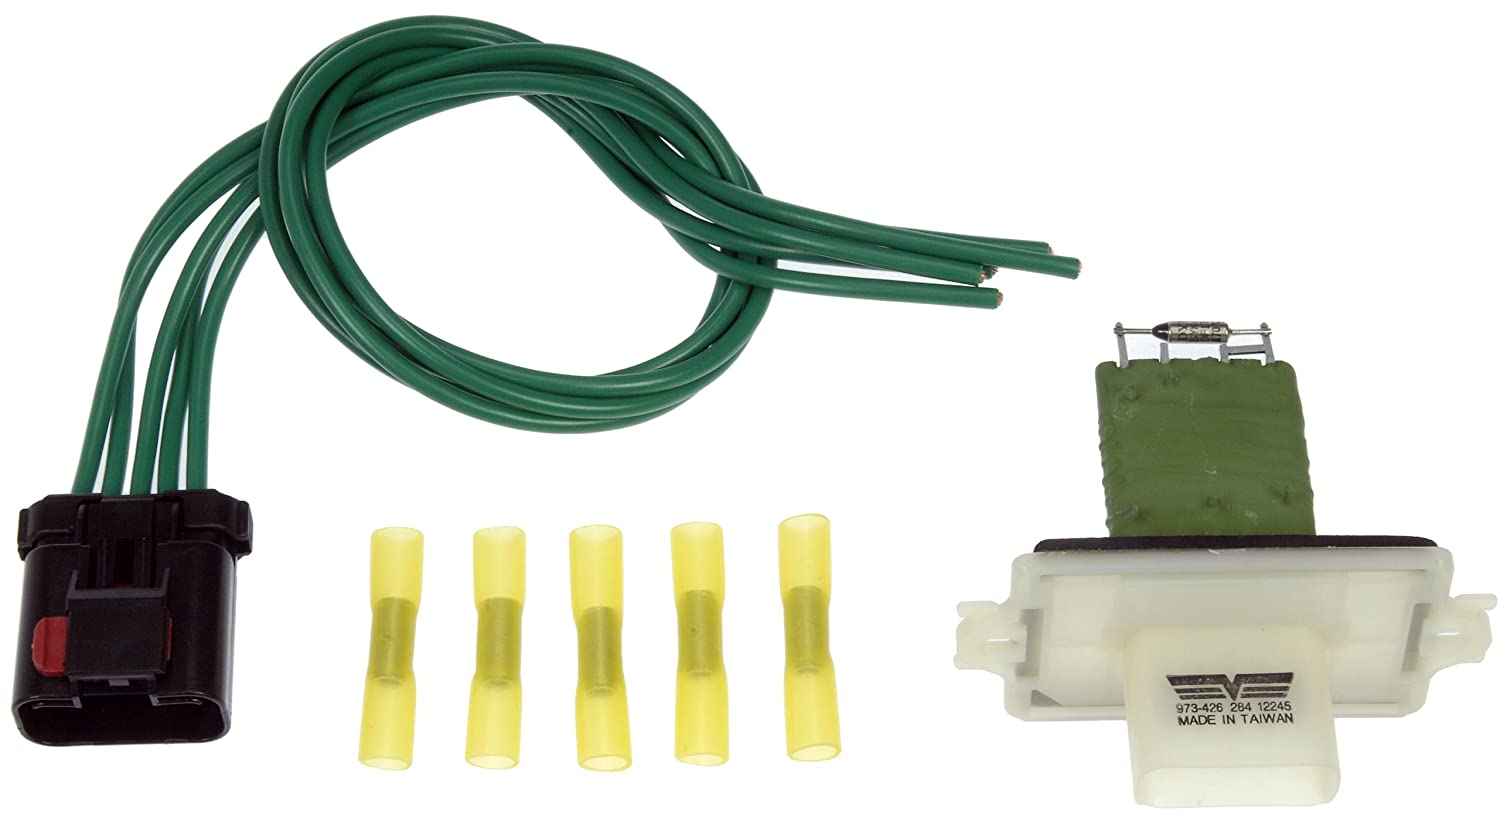 71d6VCcmzNL._SL1500_ amazon com dorman 973 426 blower motor resistor kit automotive 1998 Dodge Durango SLT at suagrazia.org